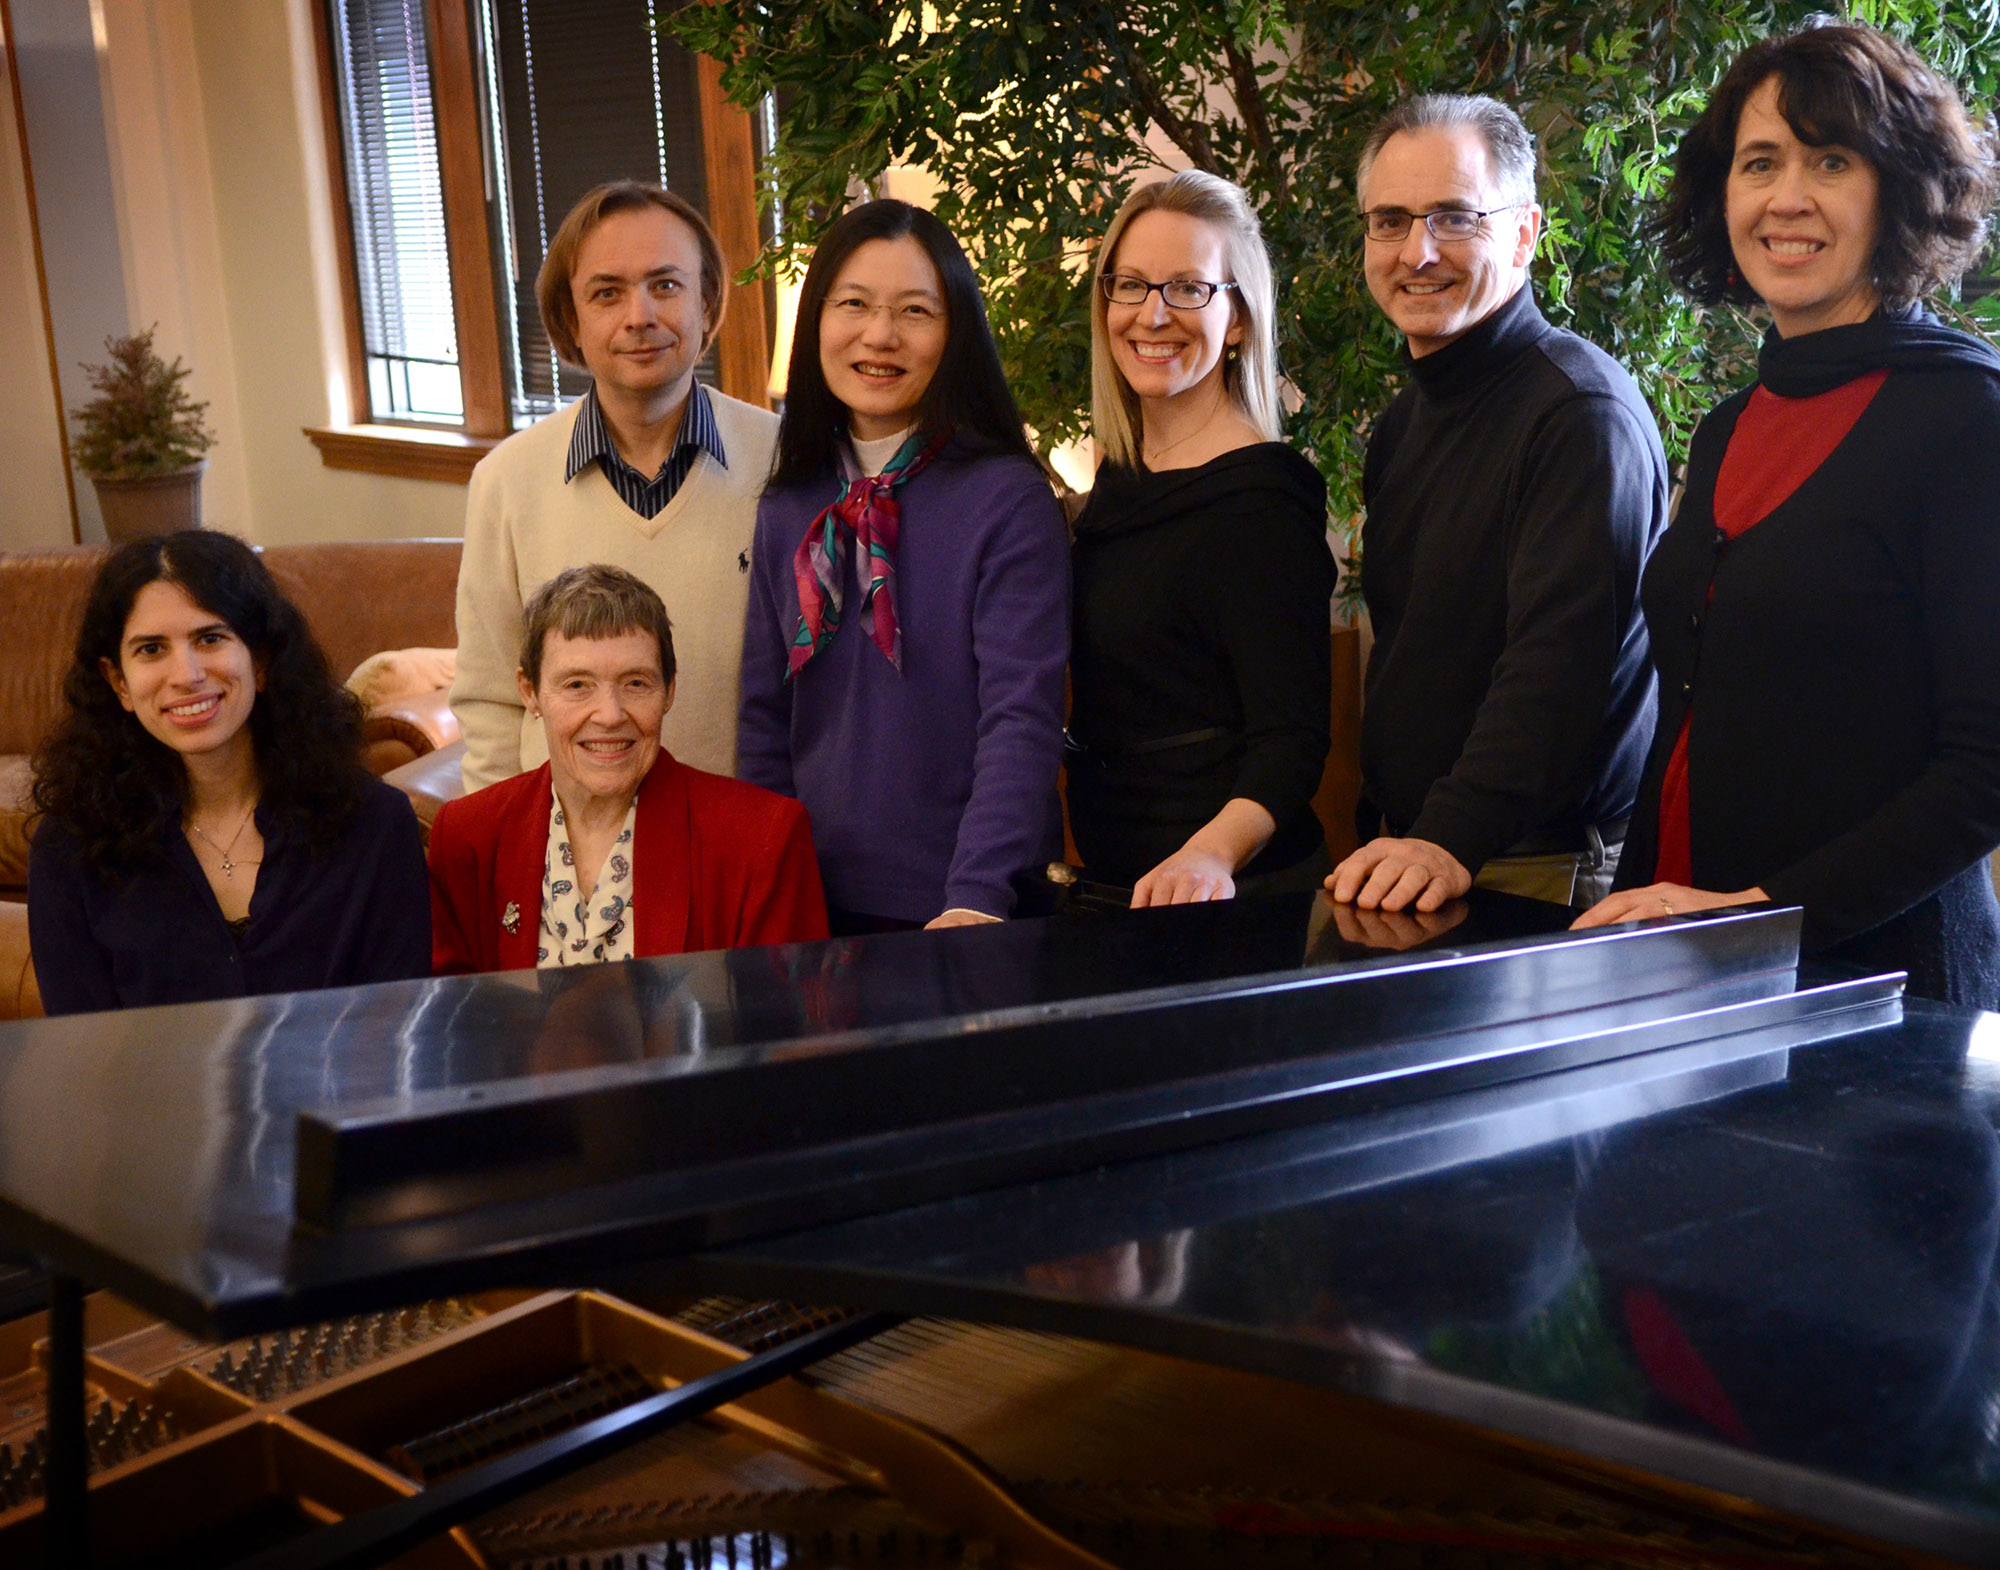 "UCO presents ""Shall We Dance? Music for Two Pianos,"" a performance by piano faculty members (pictured from front to back and left to right) Jennifer Mansour, Linda Owen, D.M.A., Valery Kuleshov, Chindarat Charoenwongse-Shaw, D.M.A., Sallie Pollack, D.M.A., David Forbat, D.M.A., and Natalie Syring at 7:30 p.m. Feb. 18 at the UCO Jazz Lab."